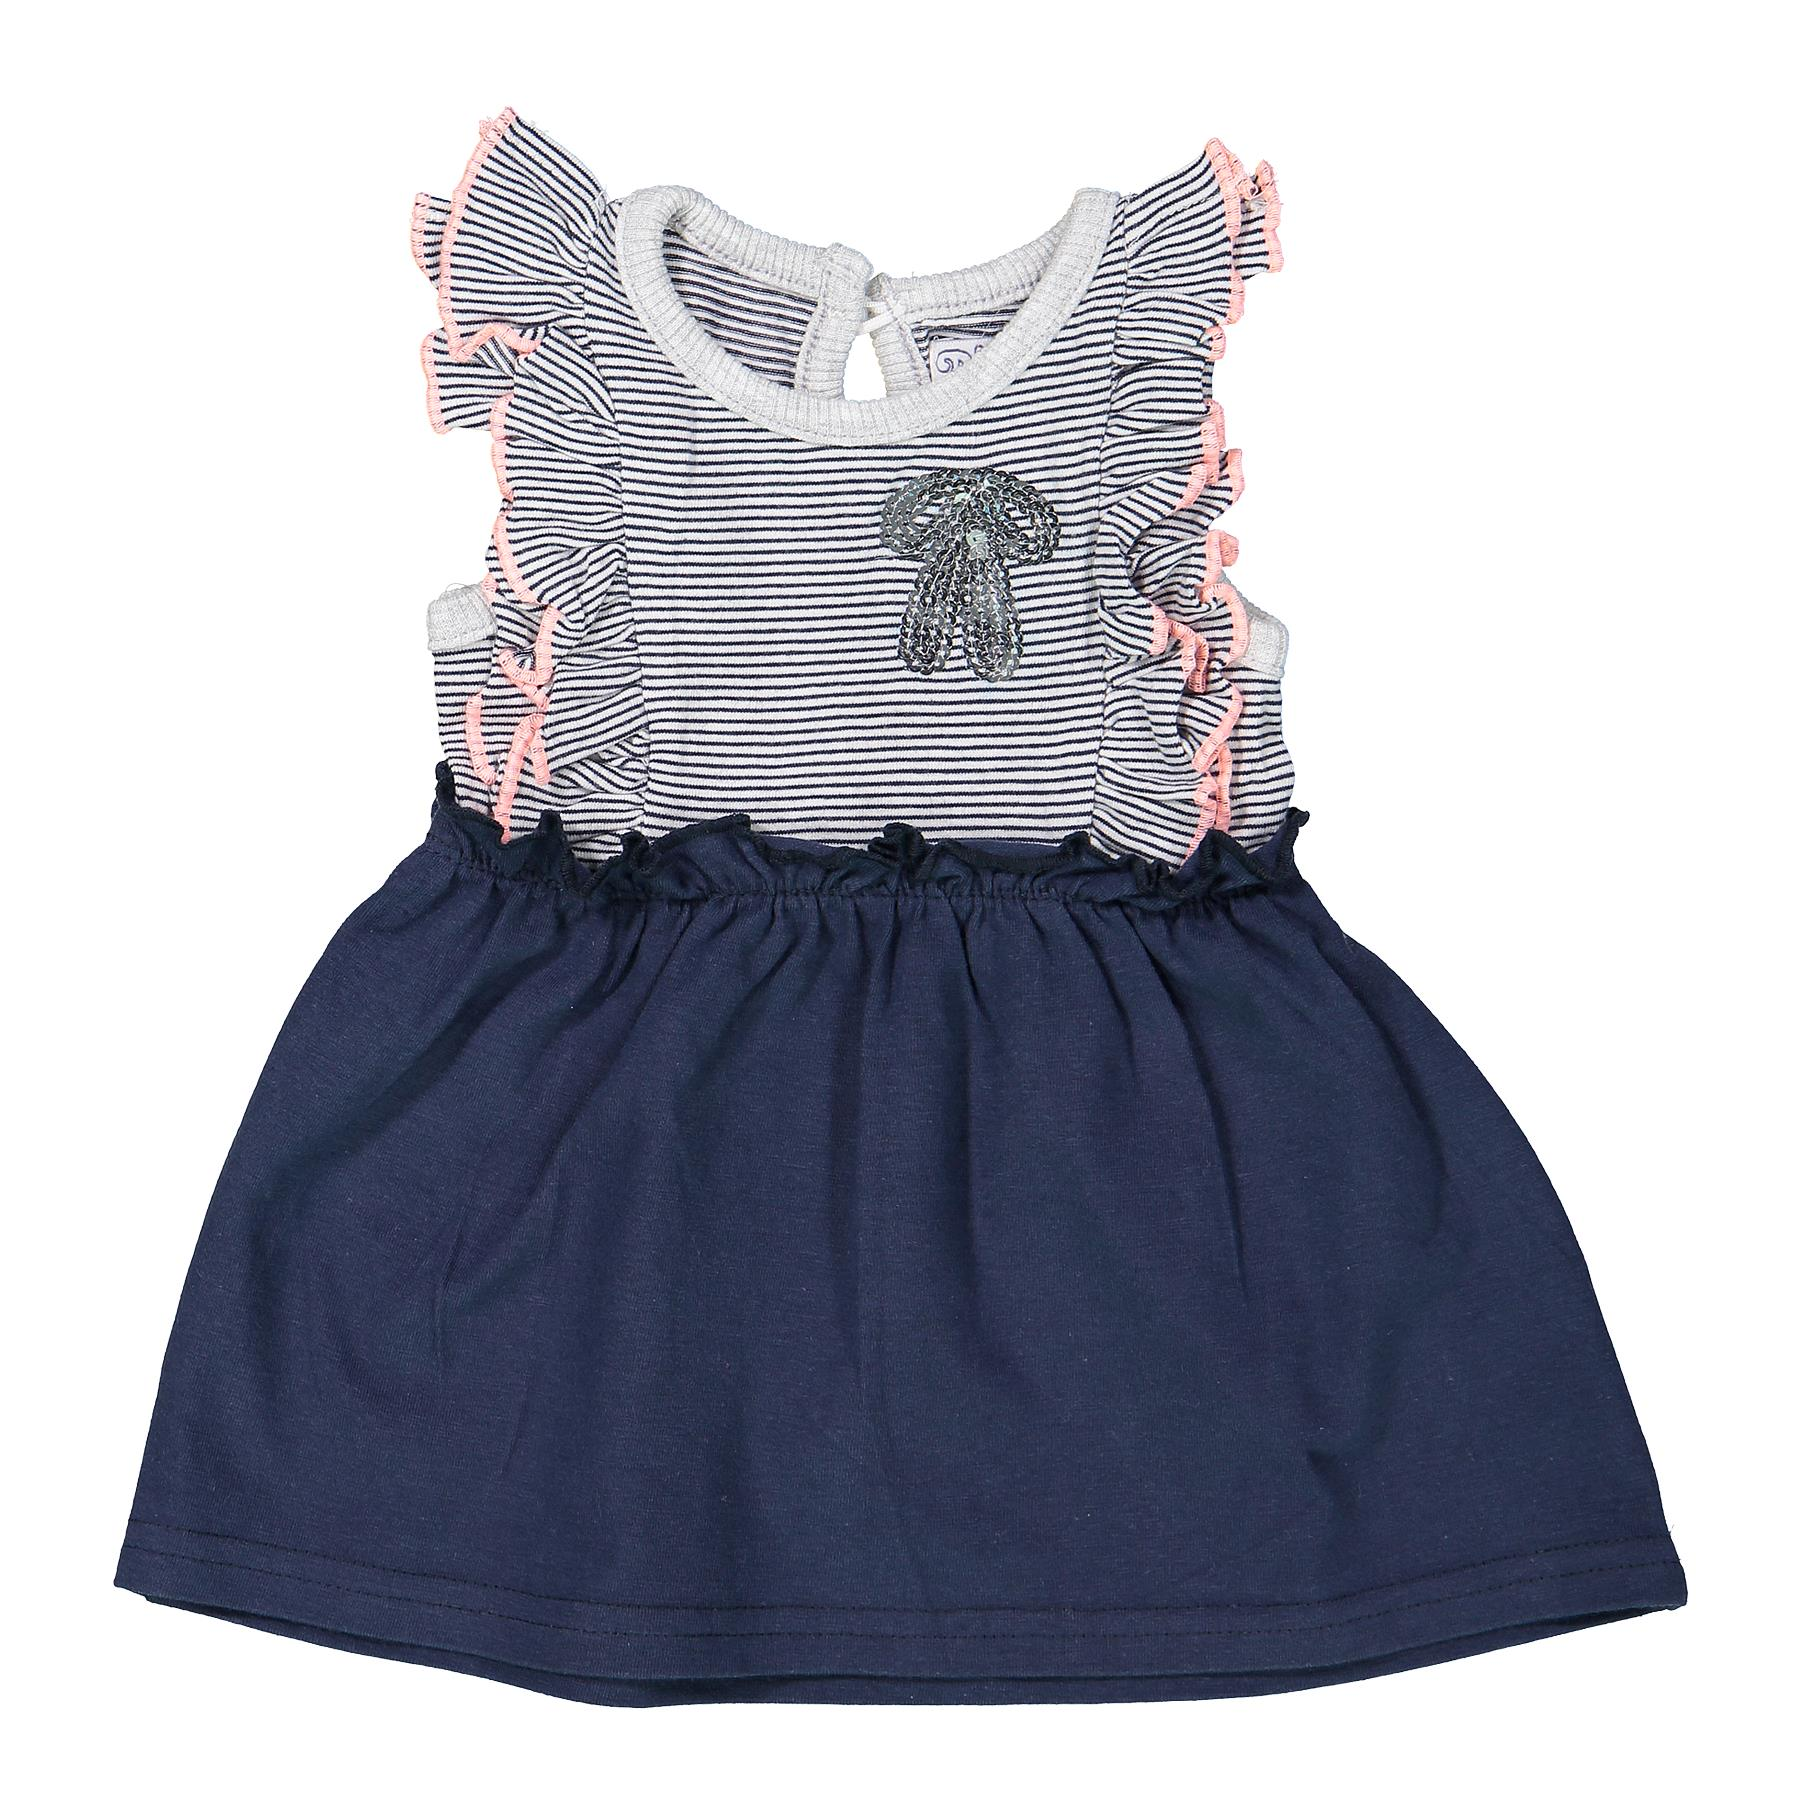 DIRKJE Šaty A-SO FRESH BOWTIQUE vel. 62 Navy